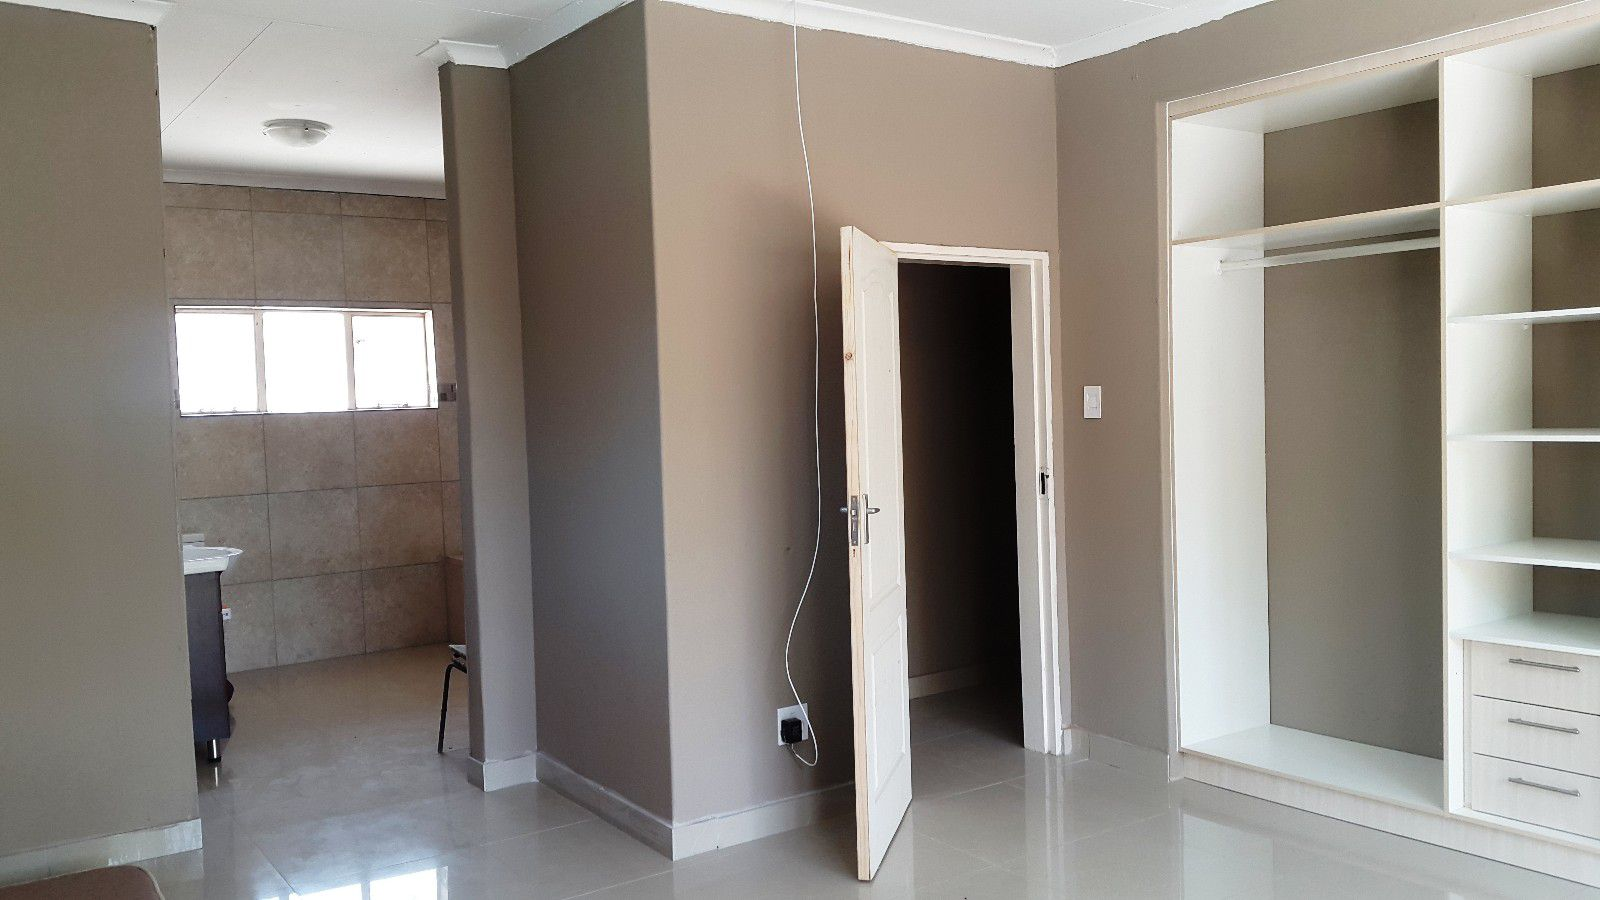 Potchefstroom Central property for sale. Ref No: 13410360. Picture no 13